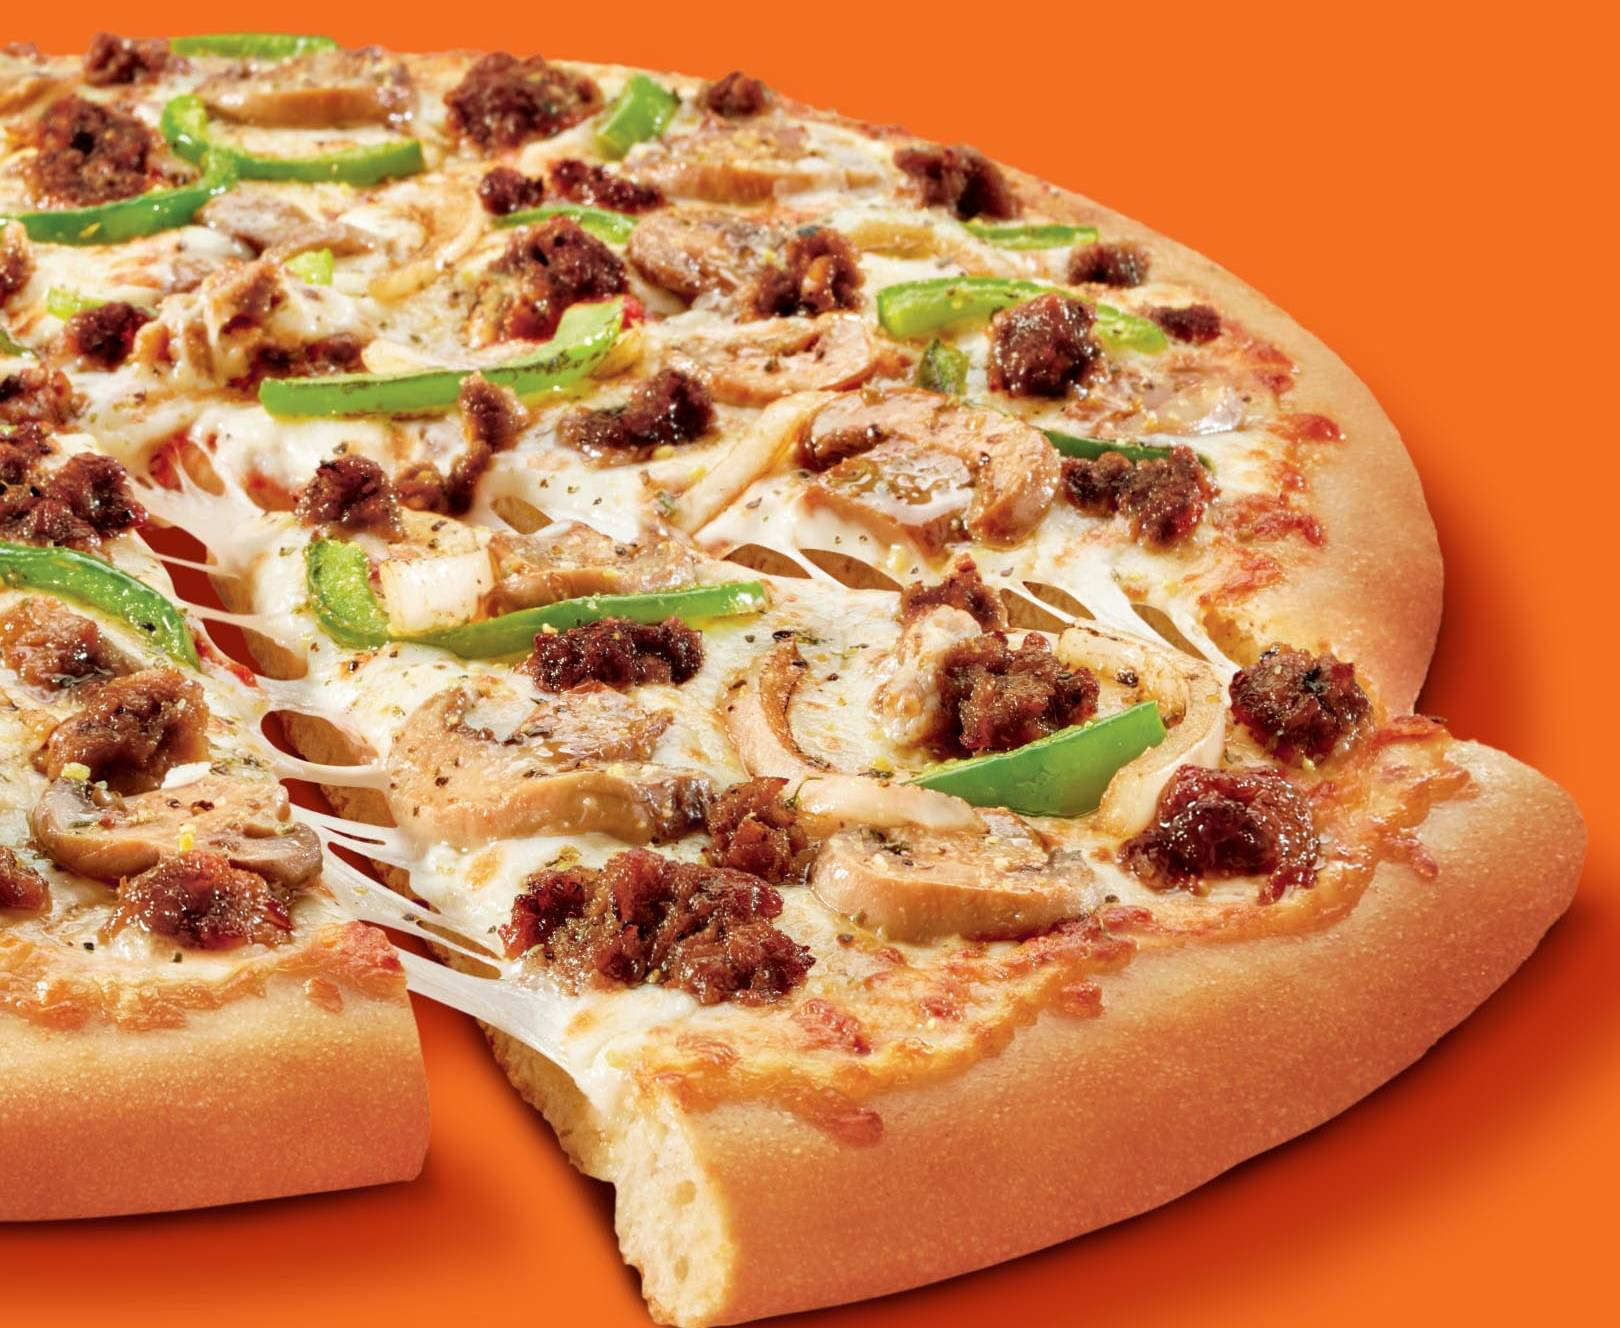 Little Caesars' Impossible Supreme Pizza introduces Impossible Foods' first meatless sausage.